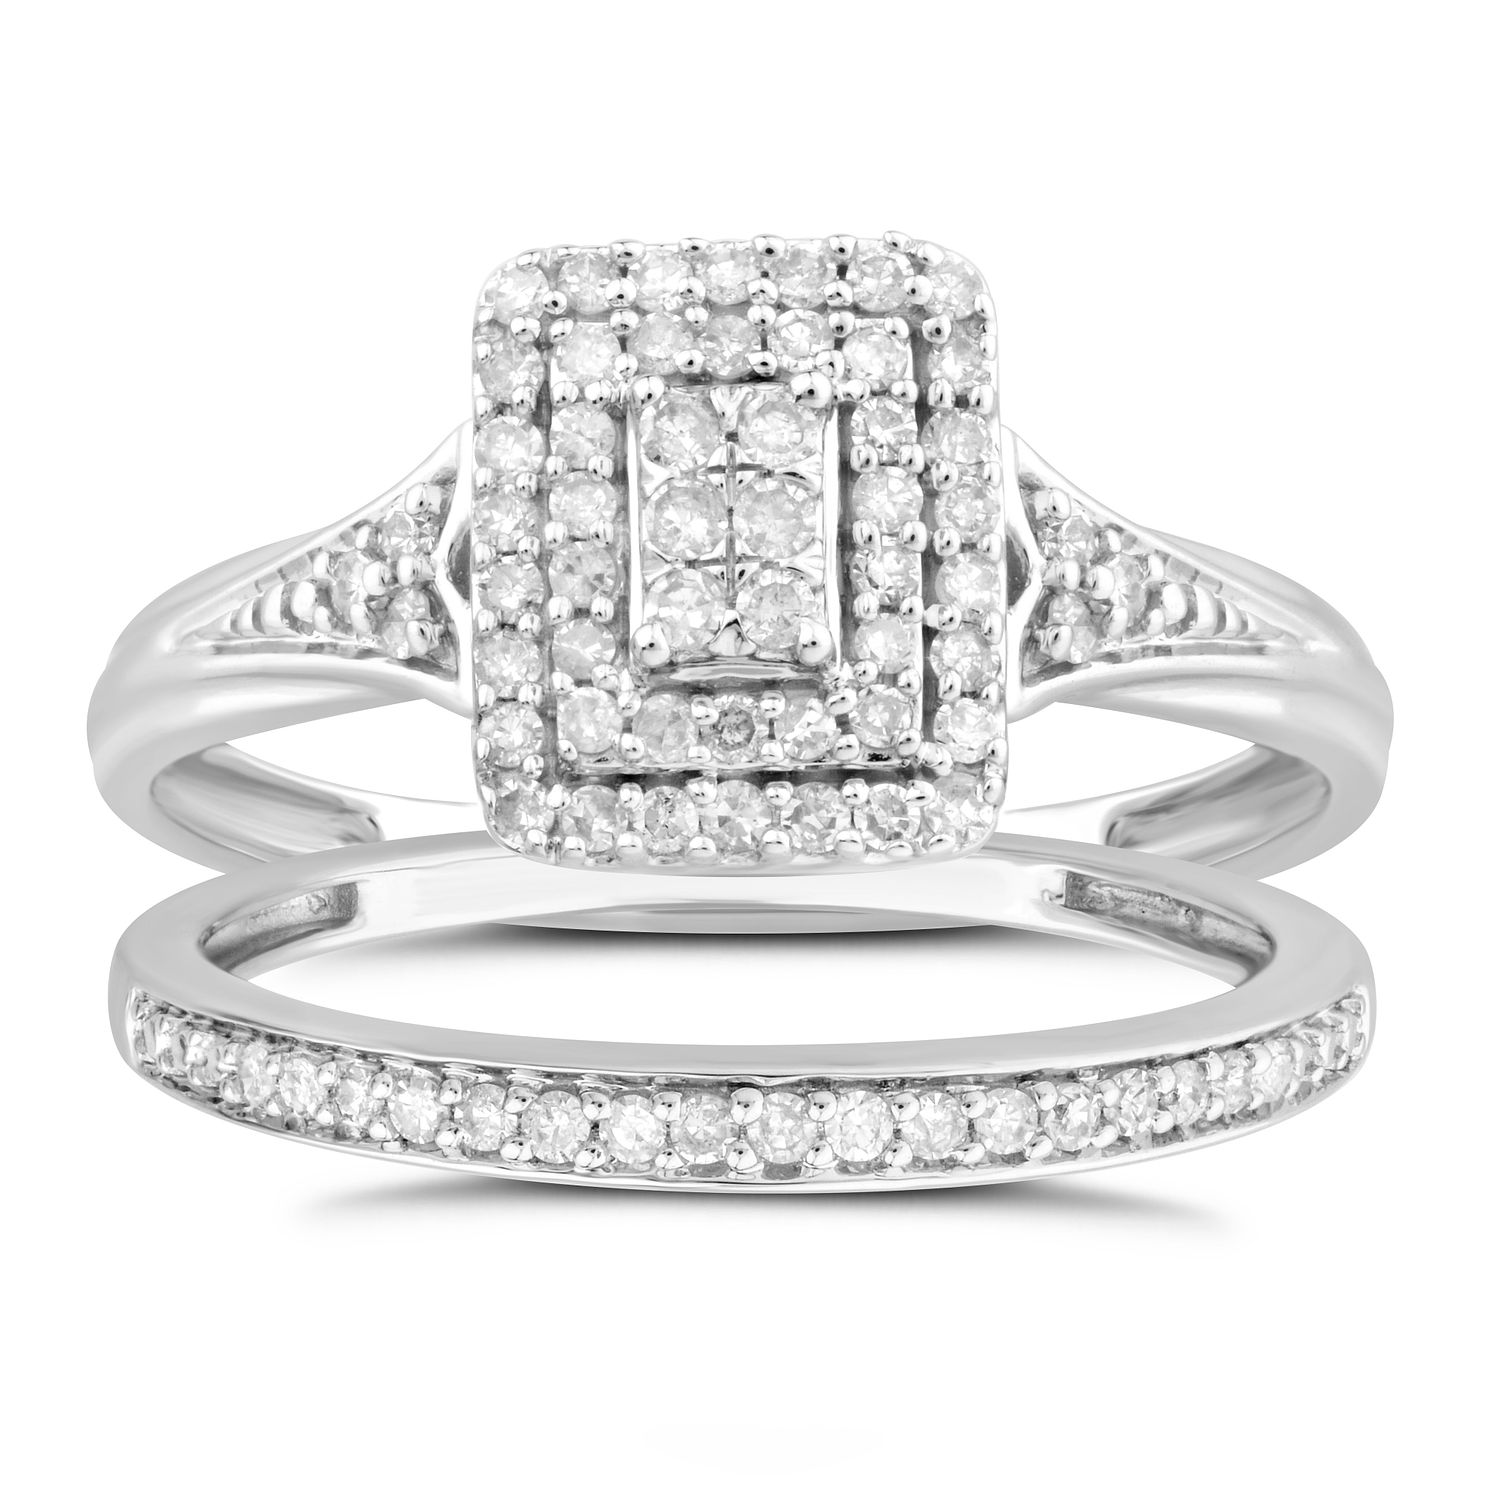 Perfect Fit 9ct White Gold 0.33ct Total Diamond Bridal Set - Product number 4890671